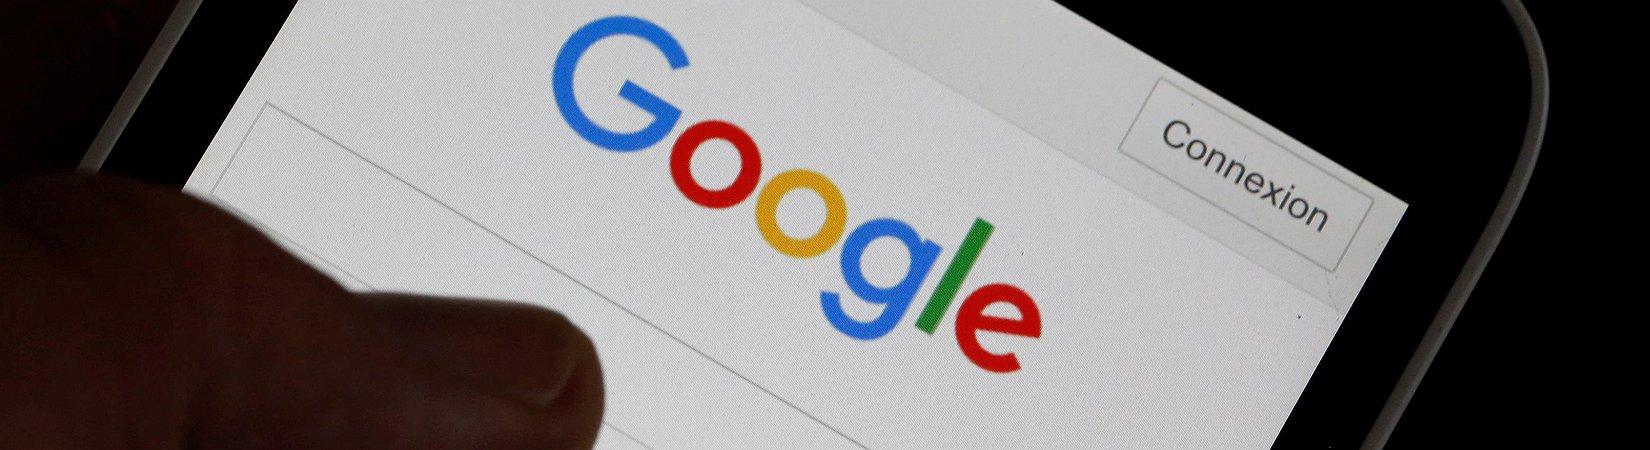 EU tipped to fine Google over manipulation of search results